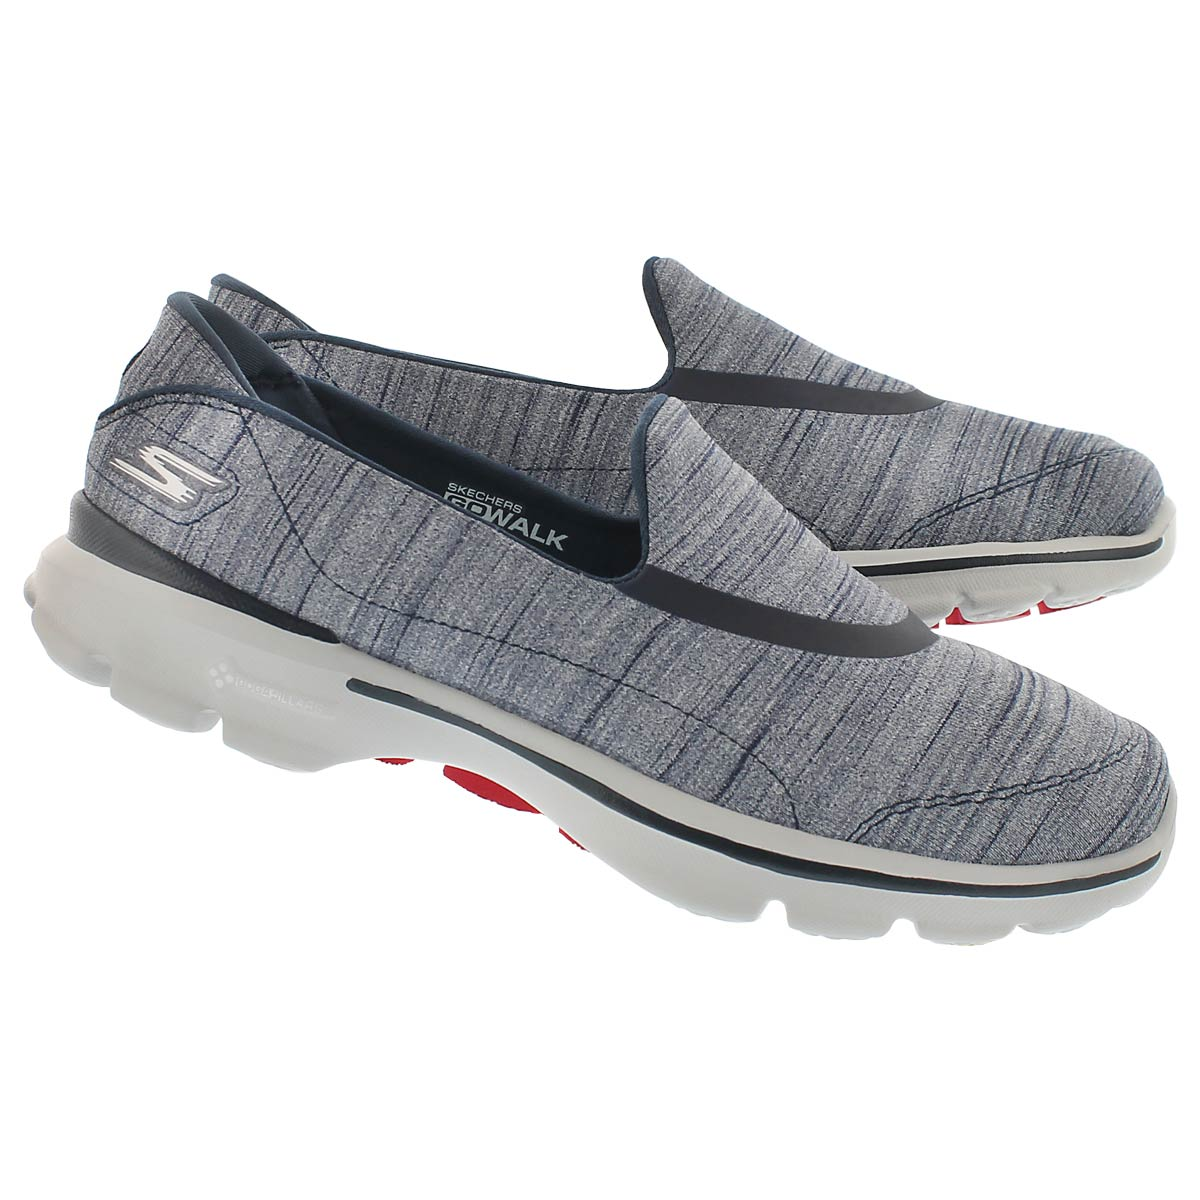 Lds GOwalk 3 navy walking shoe